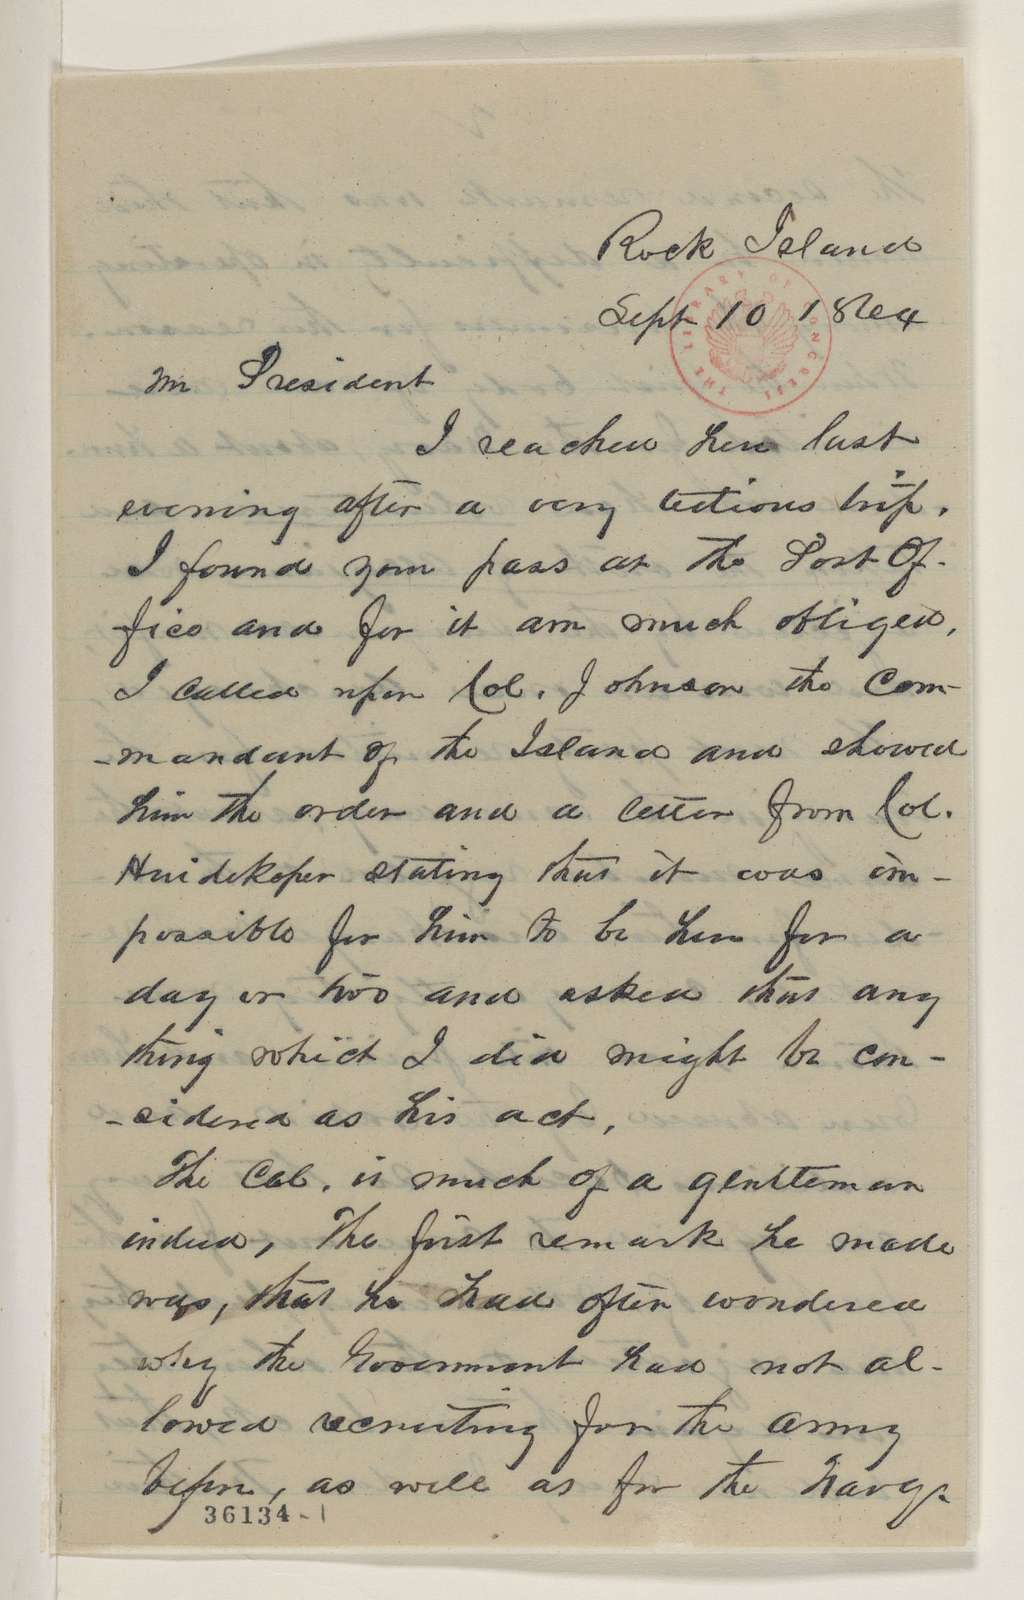 Abraham Lincoln papers: Series 1. General Correspondence. 1833-1916: Solomon Newton Pettis to Abraham Lincoln, Saturday, September 10, 1864 (Mission to prison camp at Rock Island; with telegram from Col. Johnson)